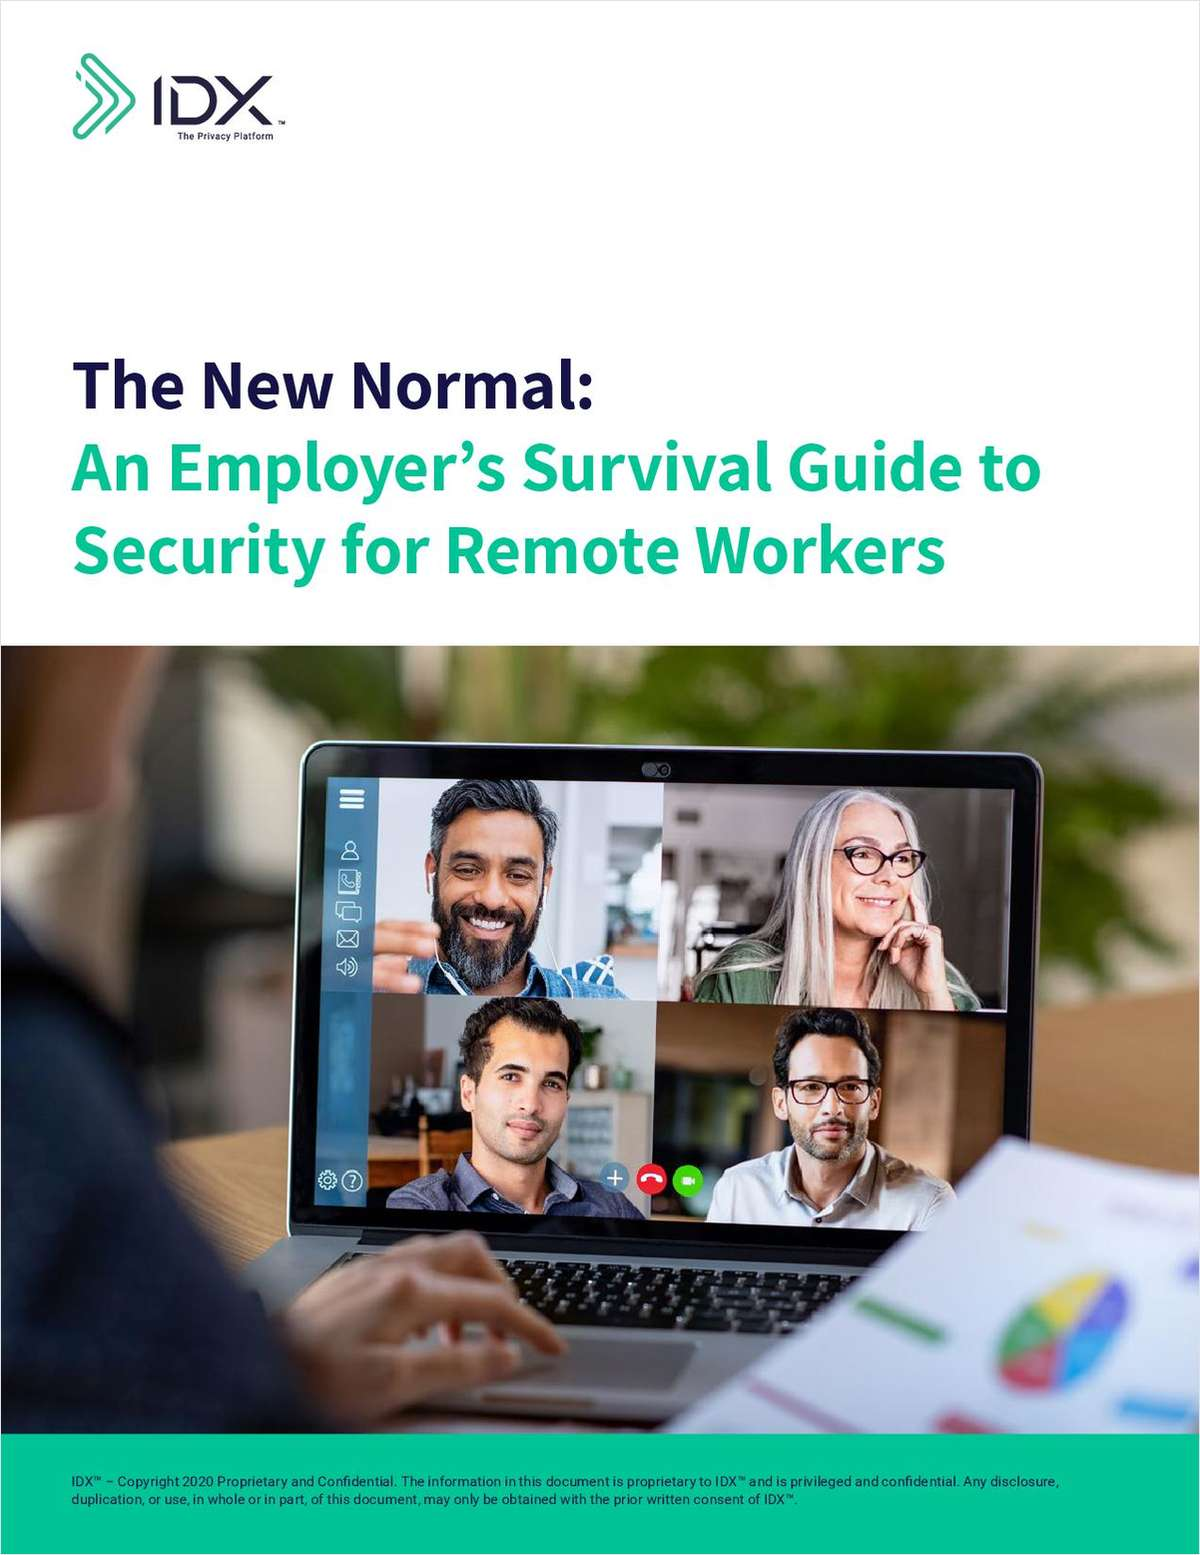 The New Normal: A Survival Guide to Security for Clients' Remote Workers